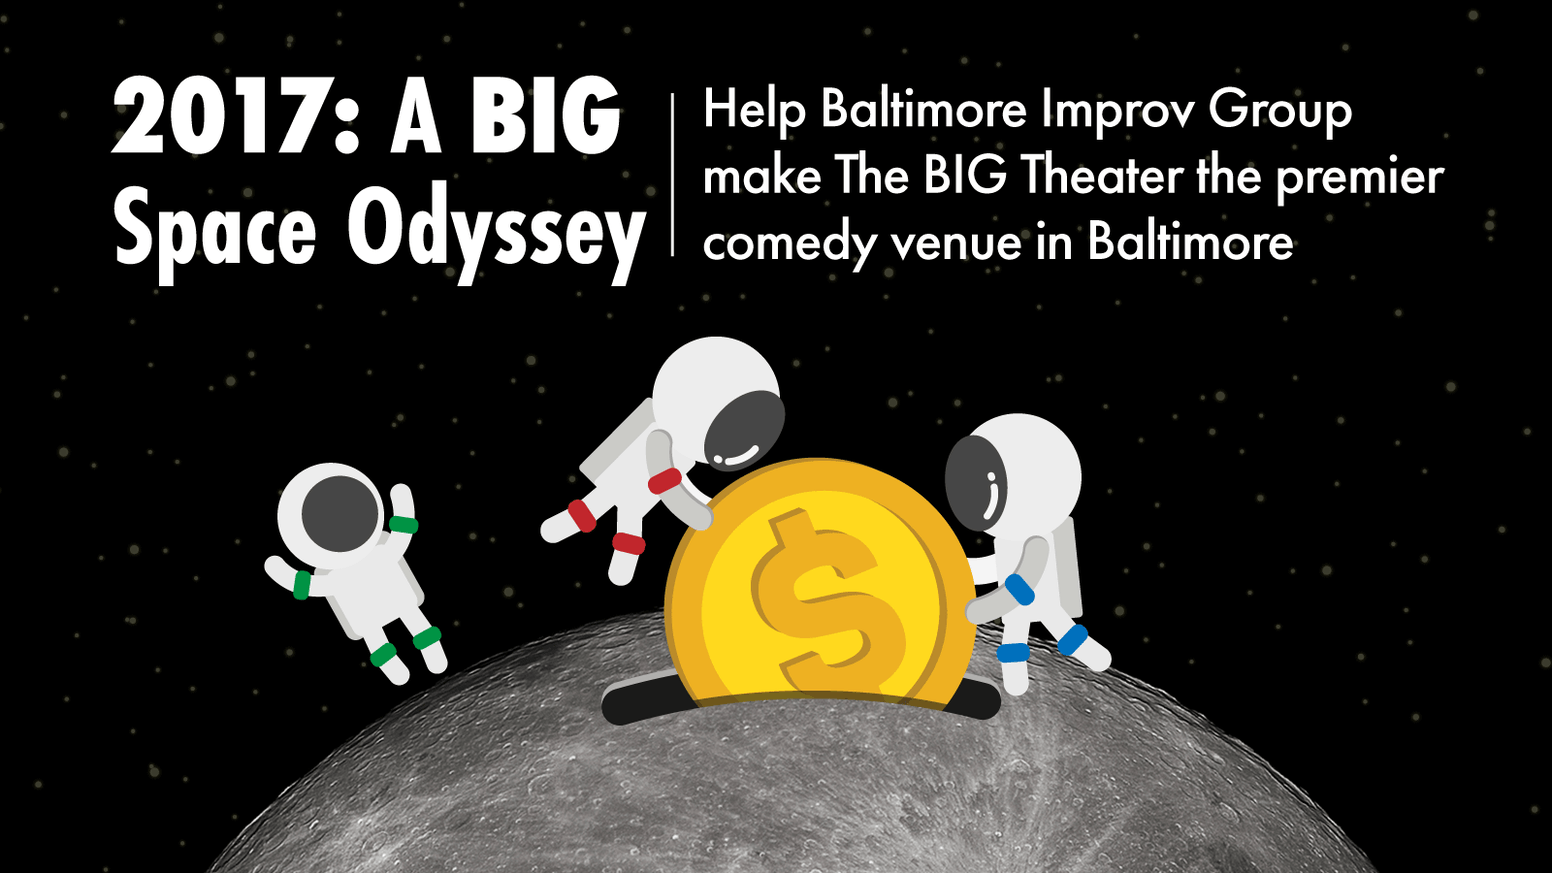 The Baltimore Improv Group presents 2017: A BIG Space Odyssey to make The BIG Theater the premier comedy venue in the region.